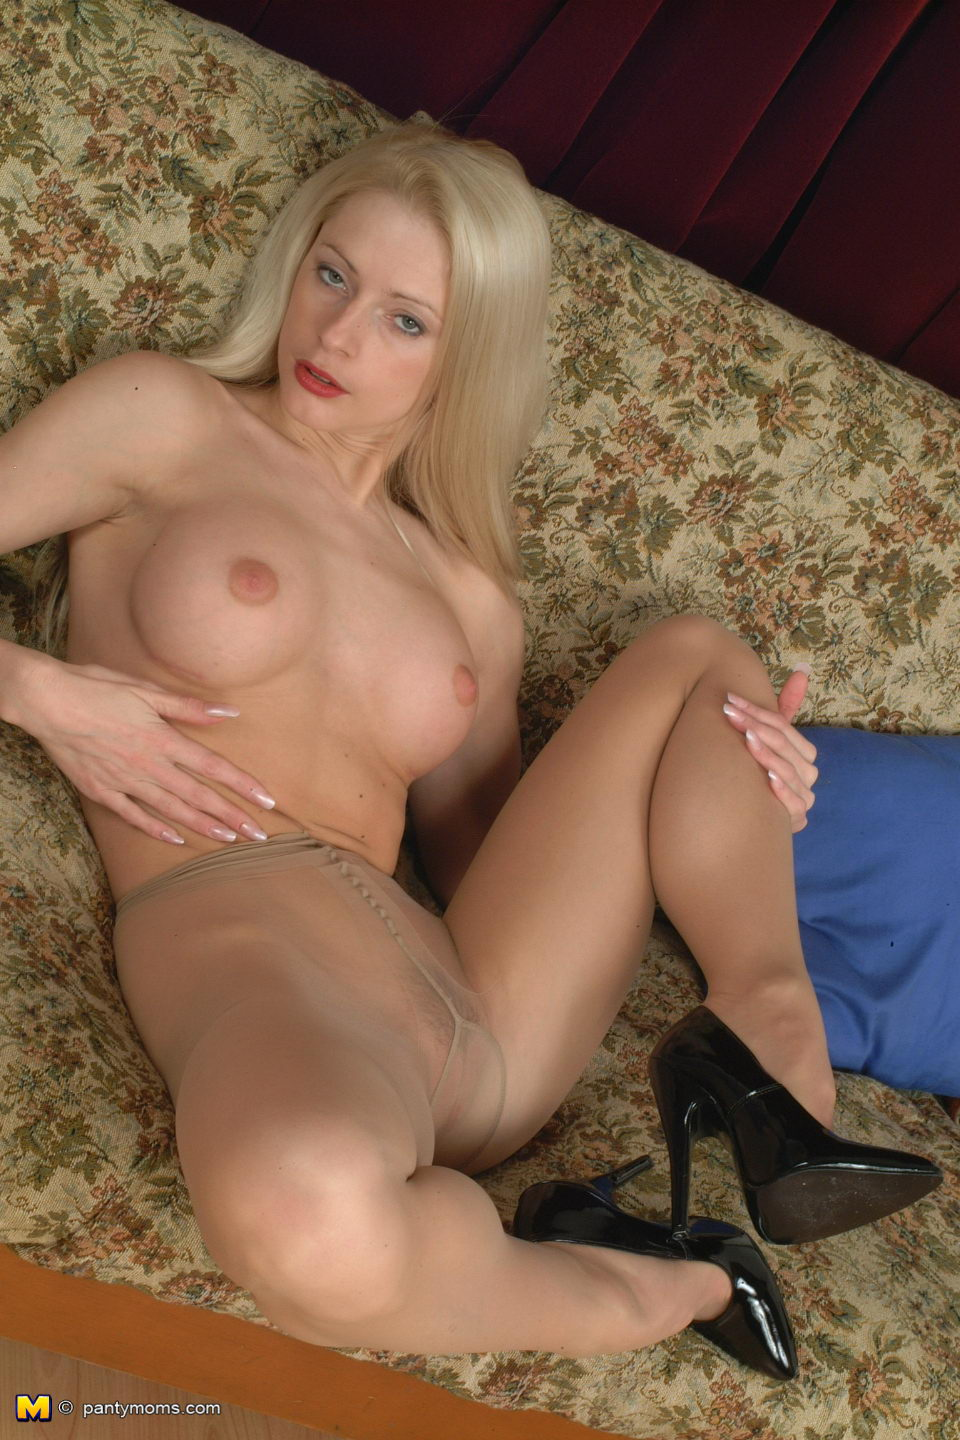 Sexy mature blonde moms agree, remarkable